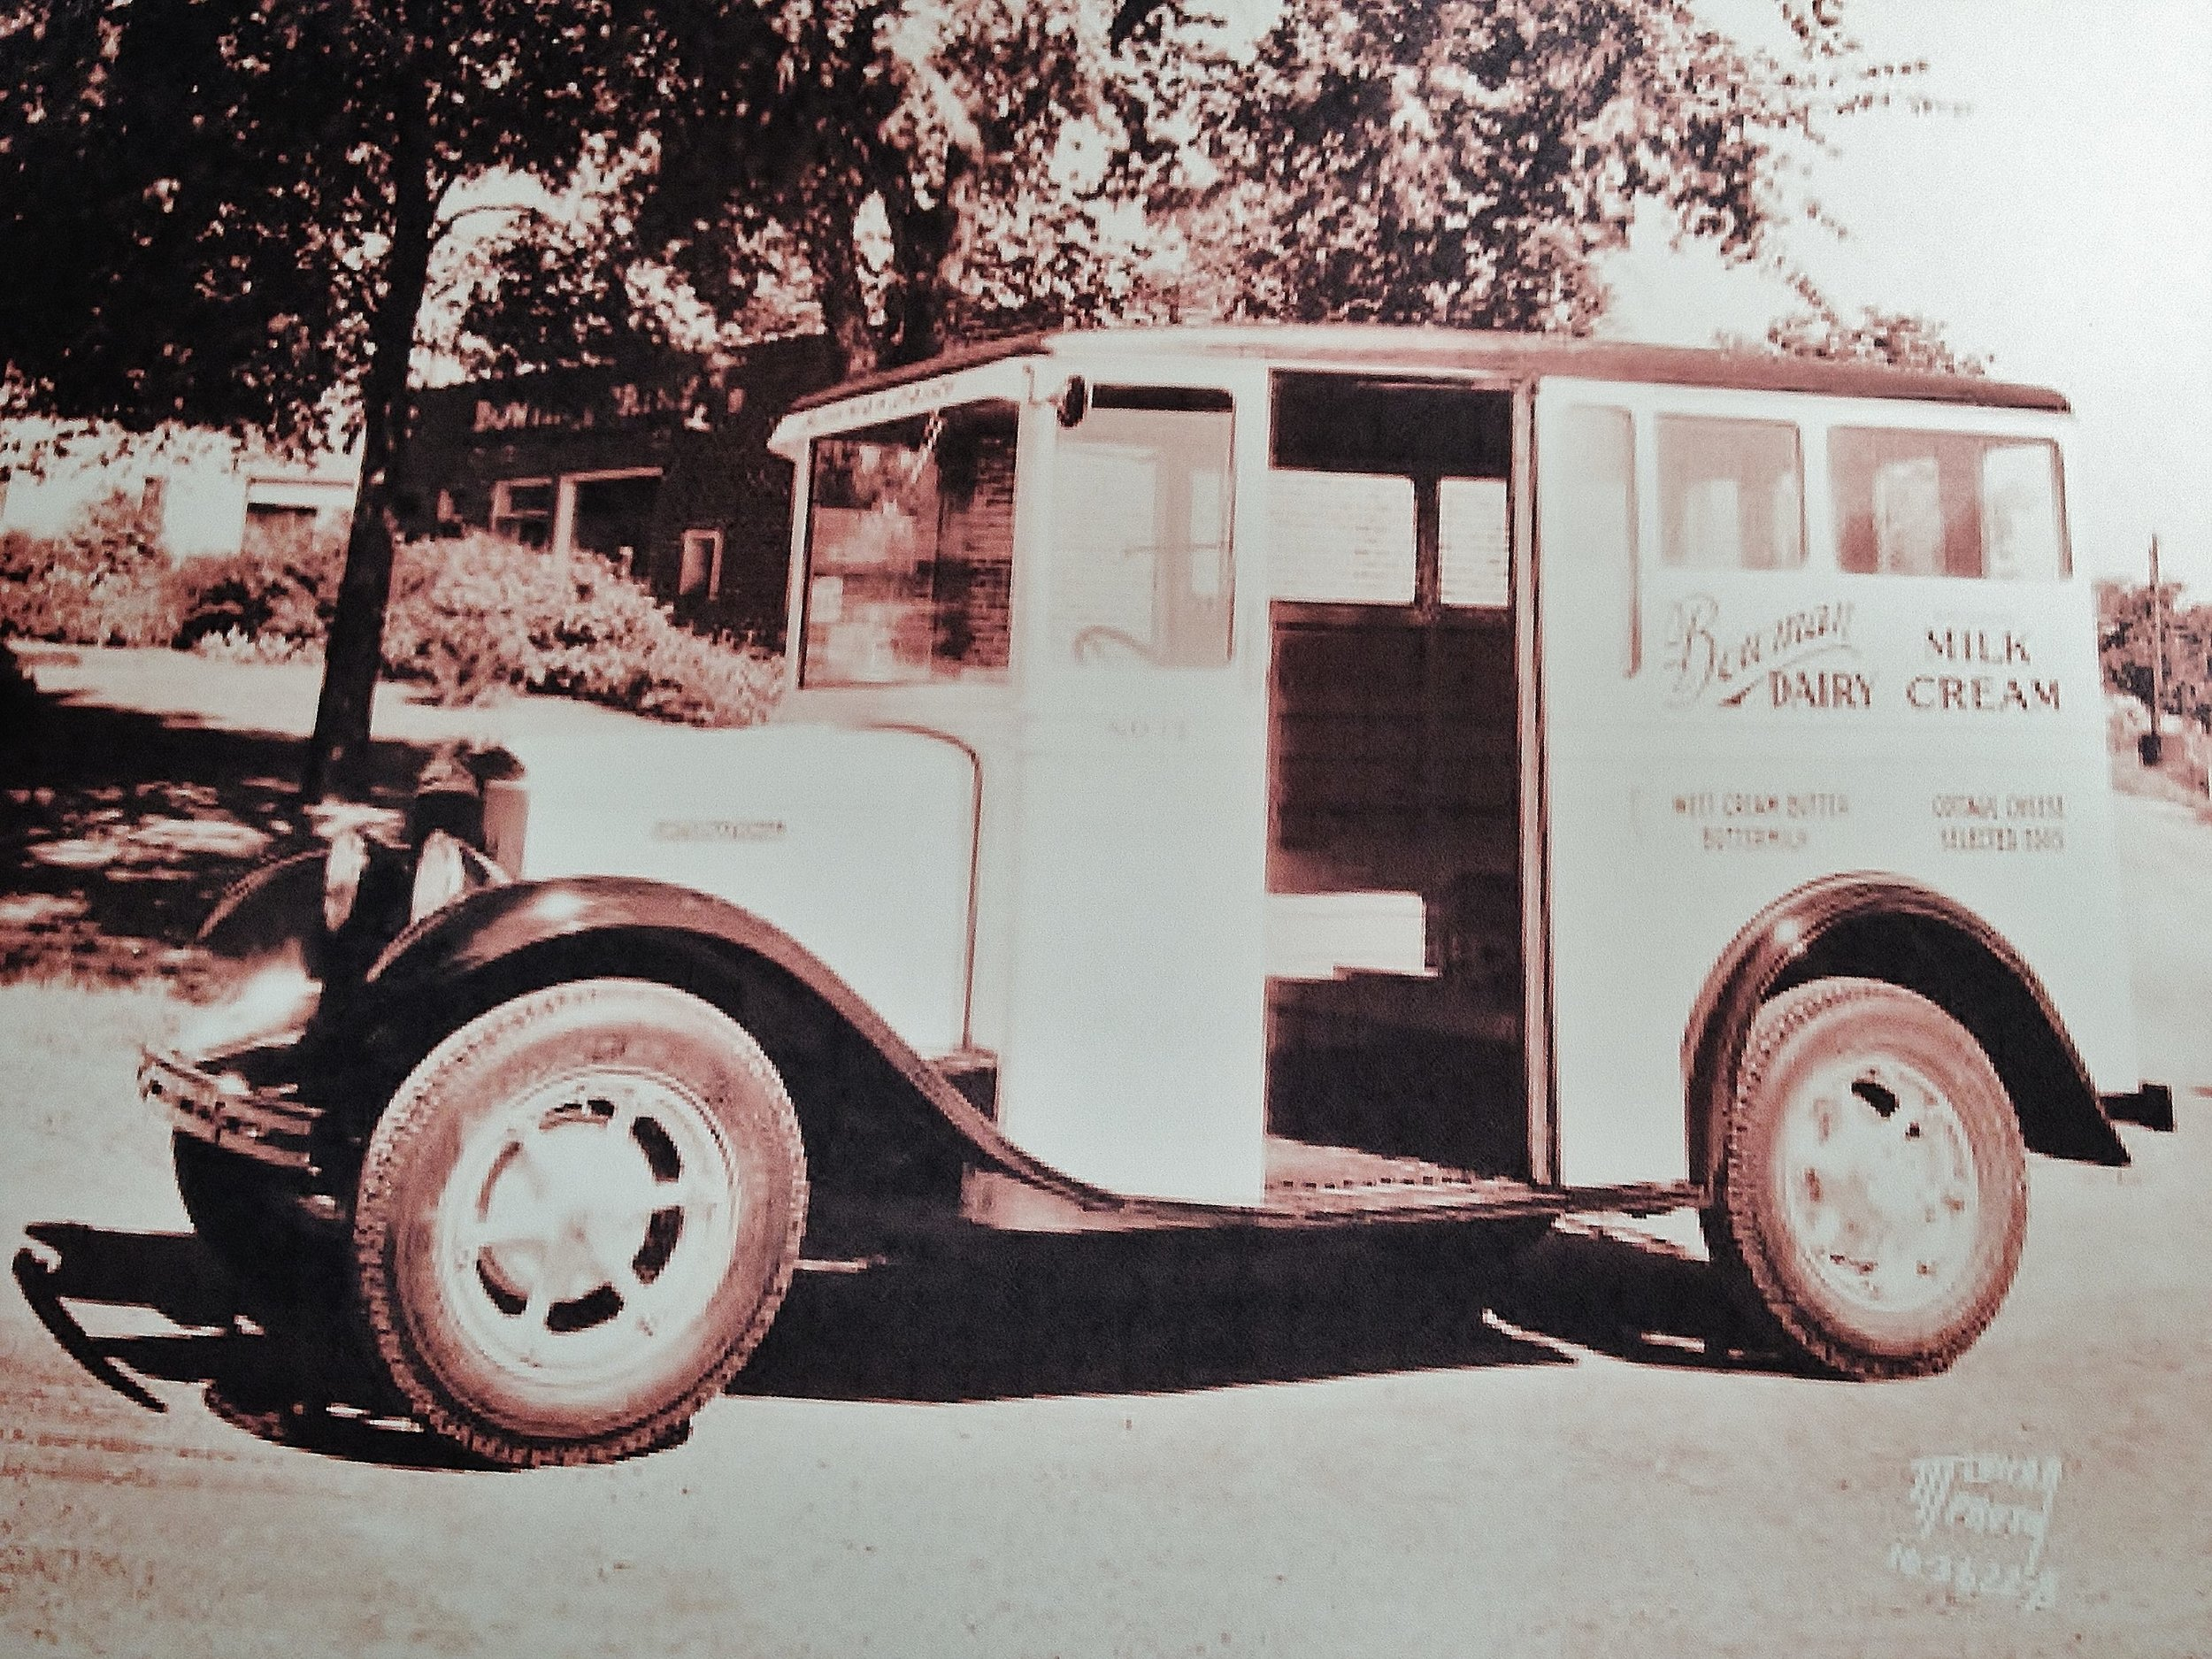 Bowman Dairy Delivery Truck